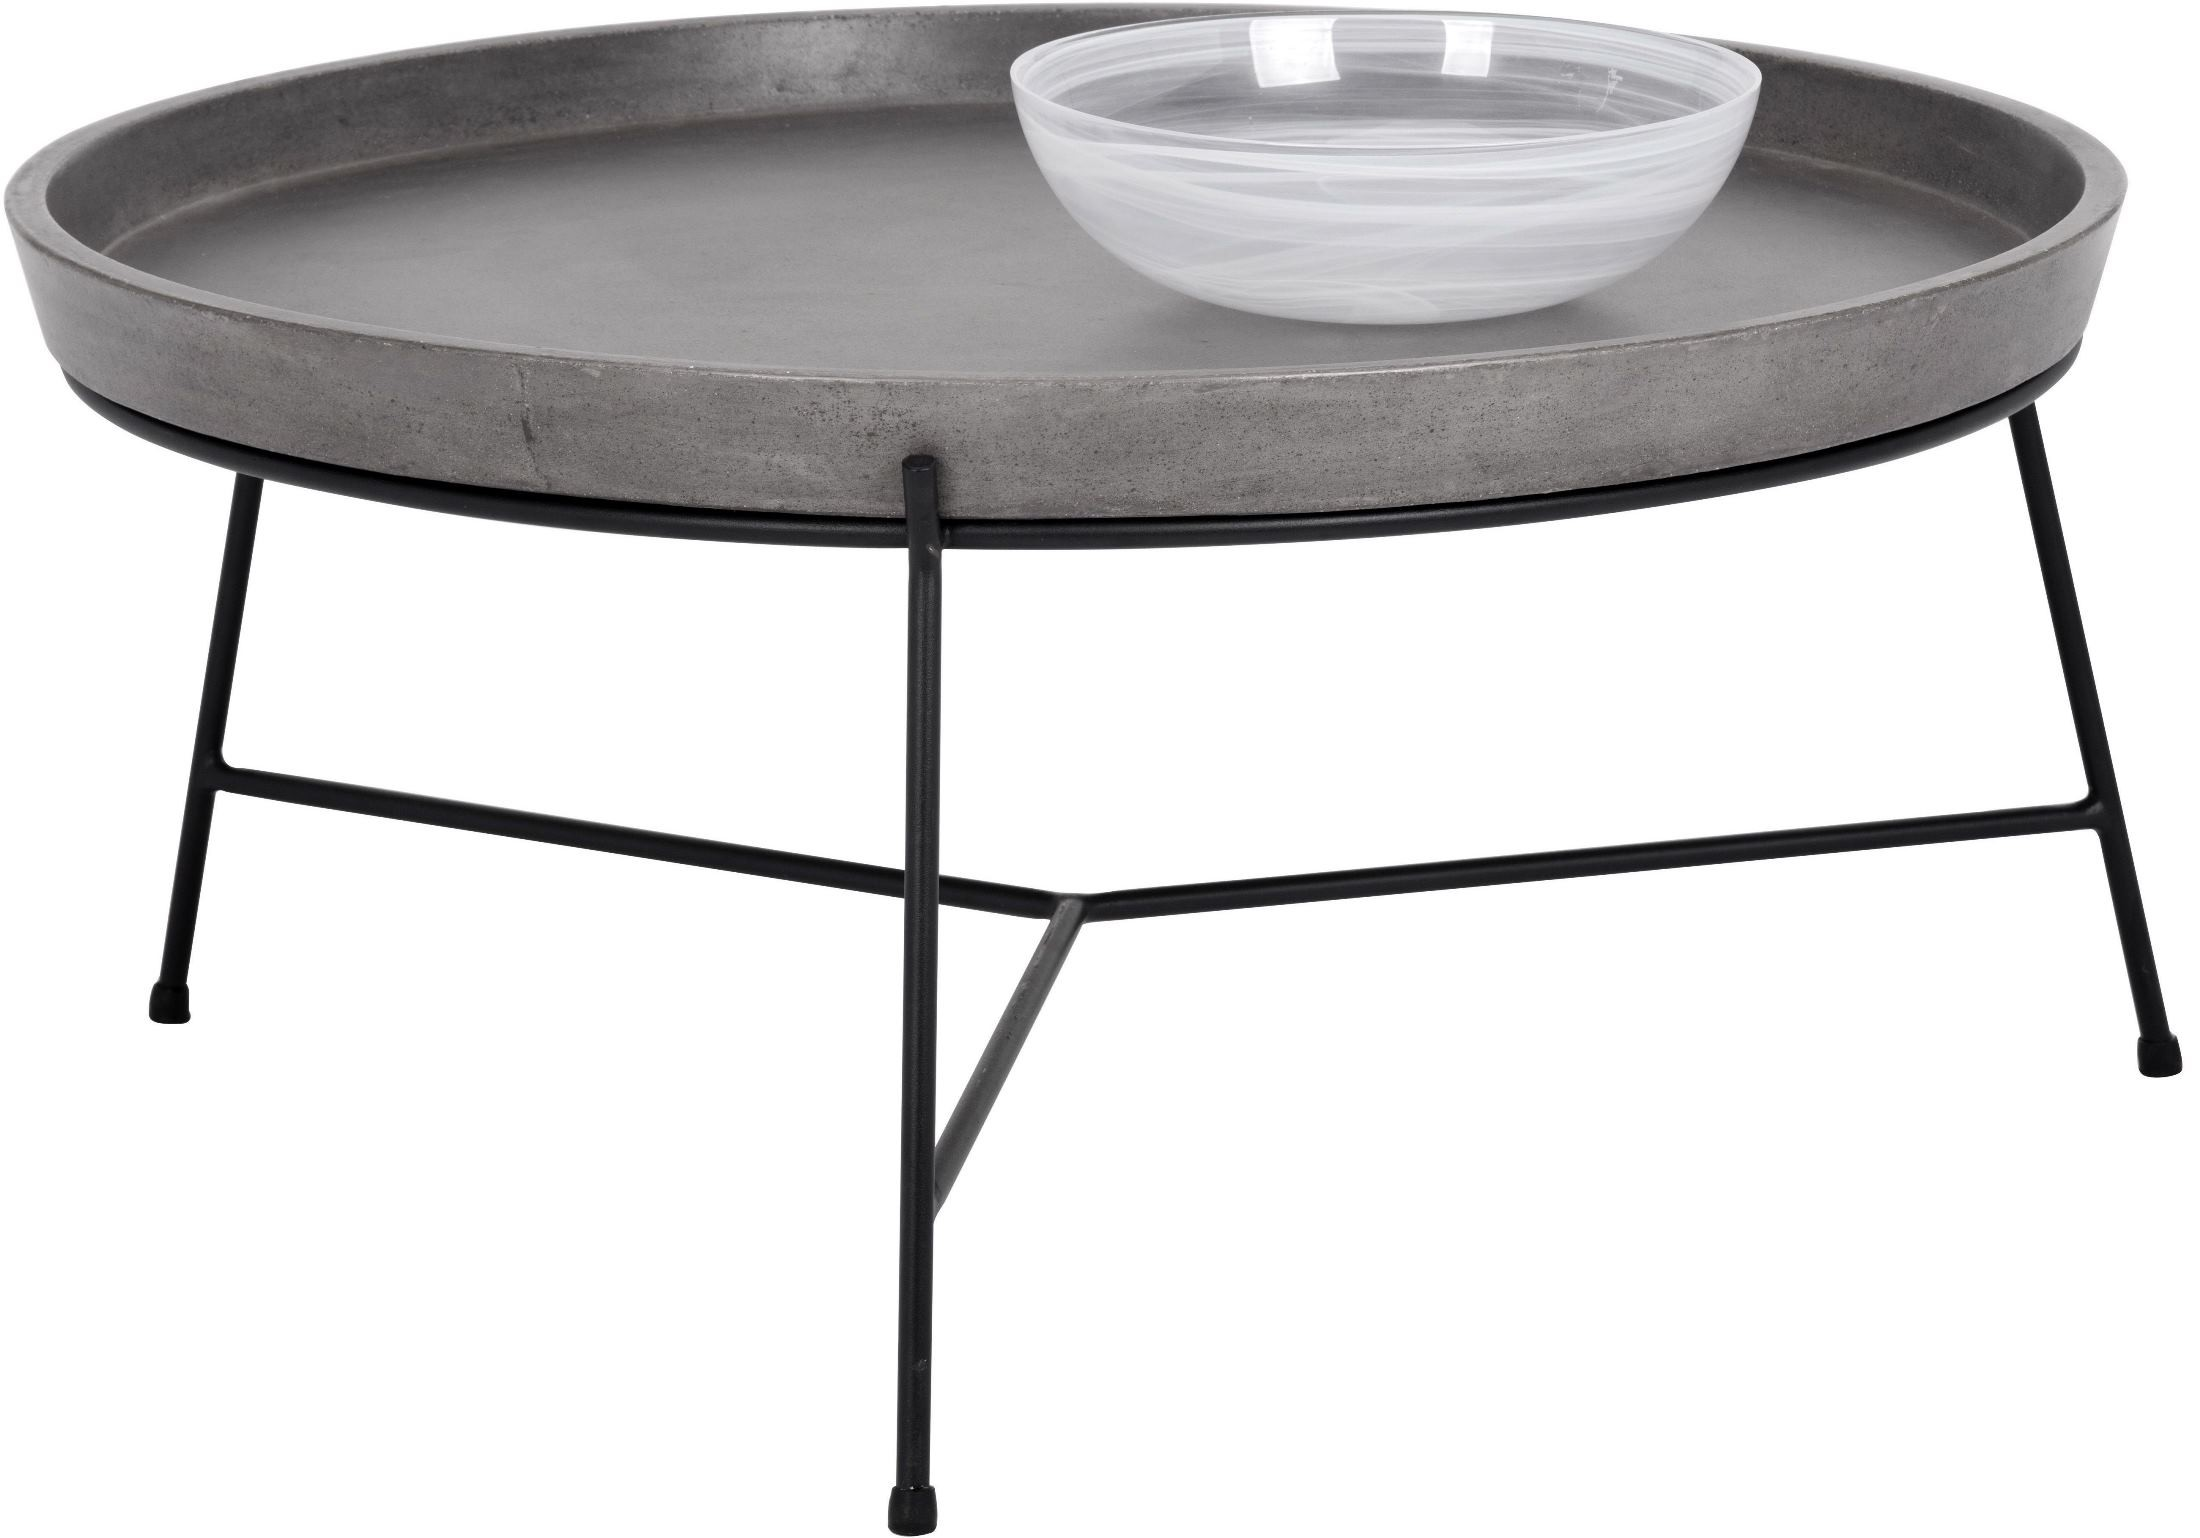 Remy Grey Concrete Coffee Table From Sunpan Coleman Furniture